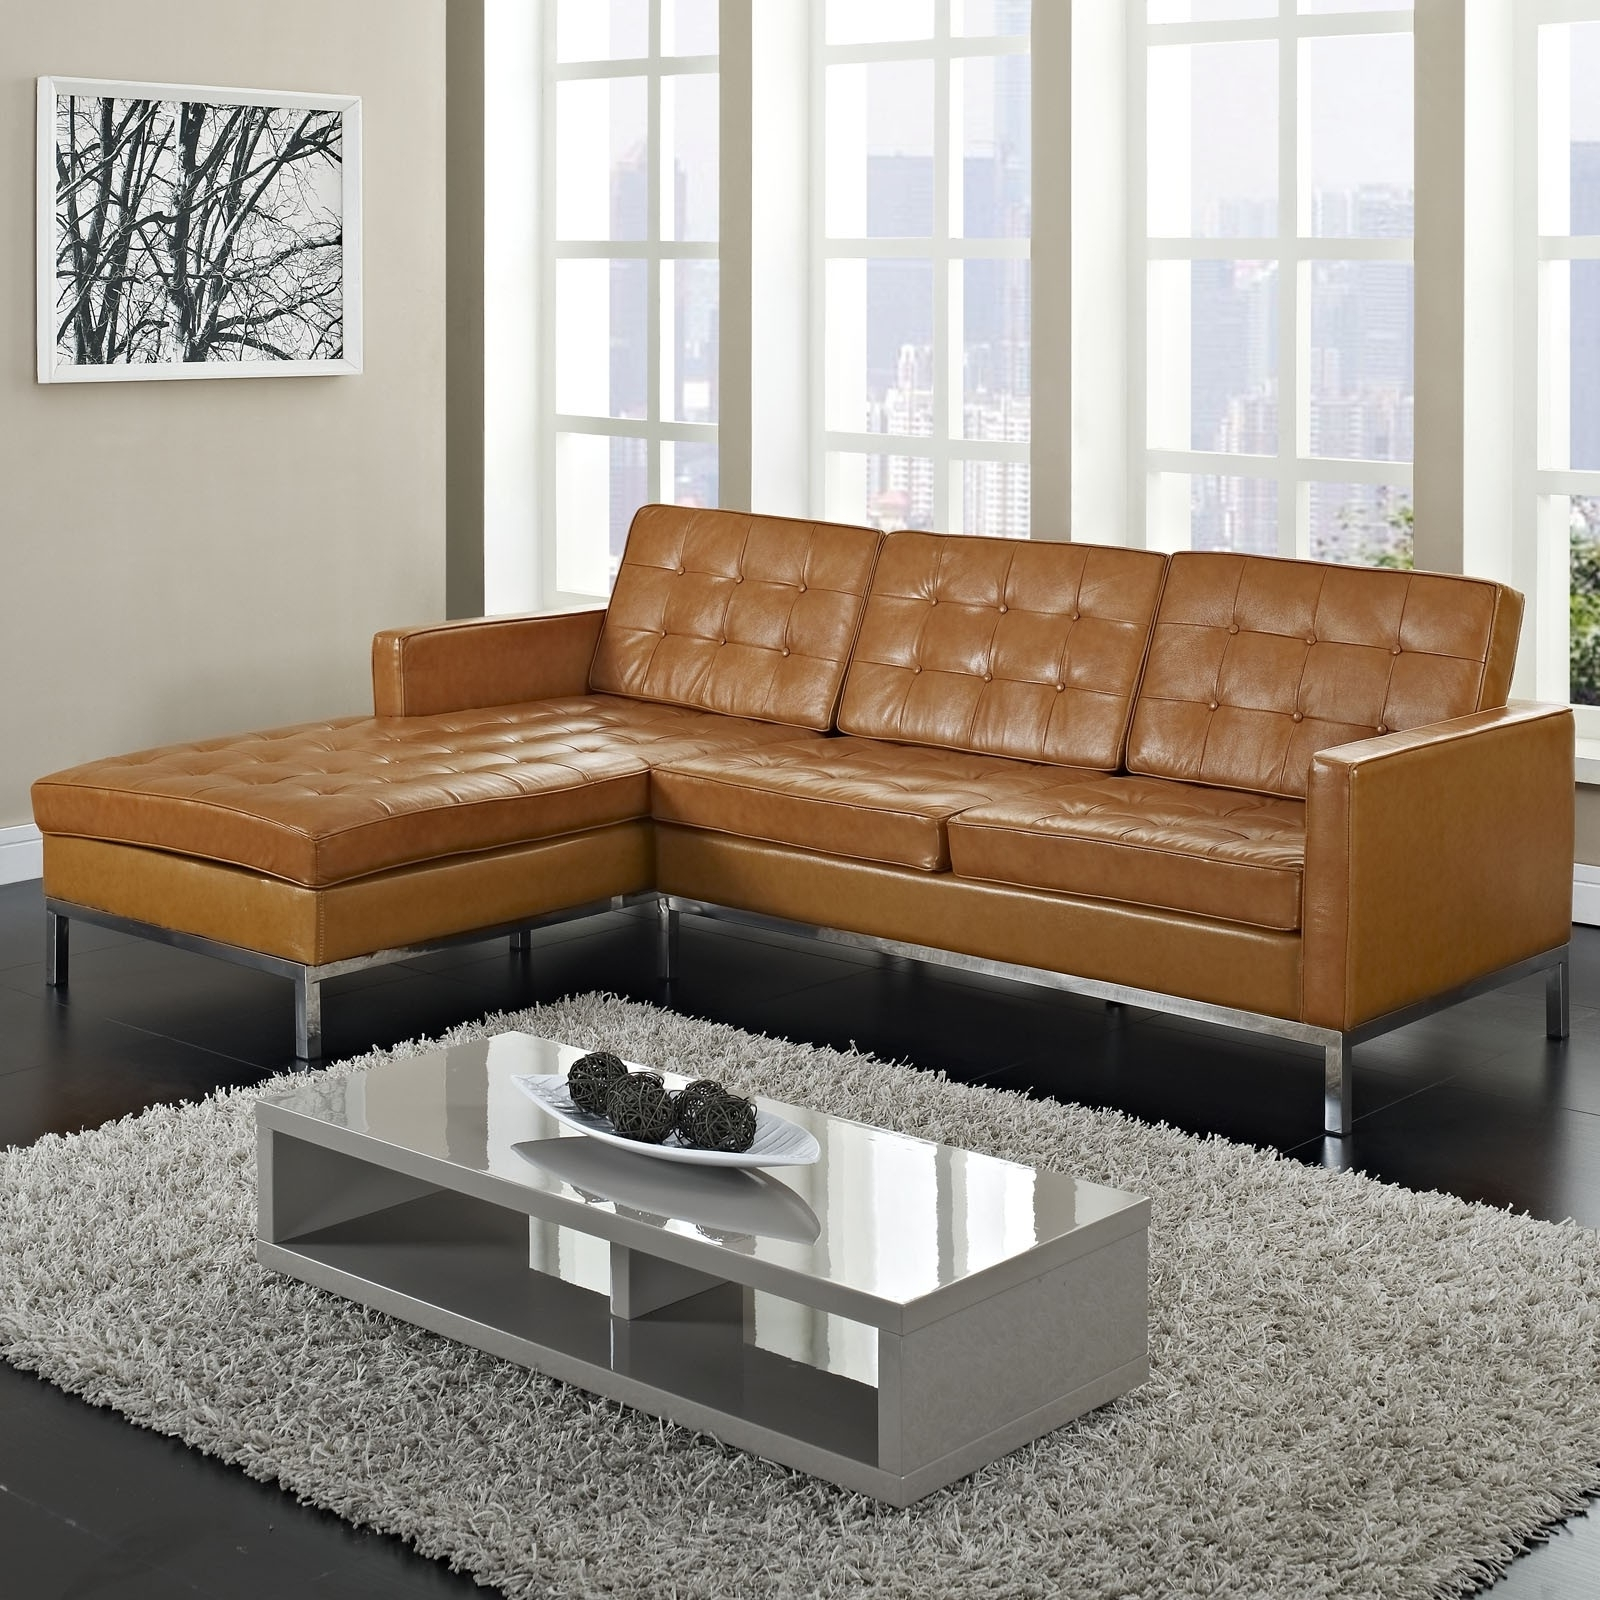 Light Tan Leather Sofa – Home Design Ideas And Pictures Inside Most Recent Light Tan Leather Sofas (View 5 of 20)